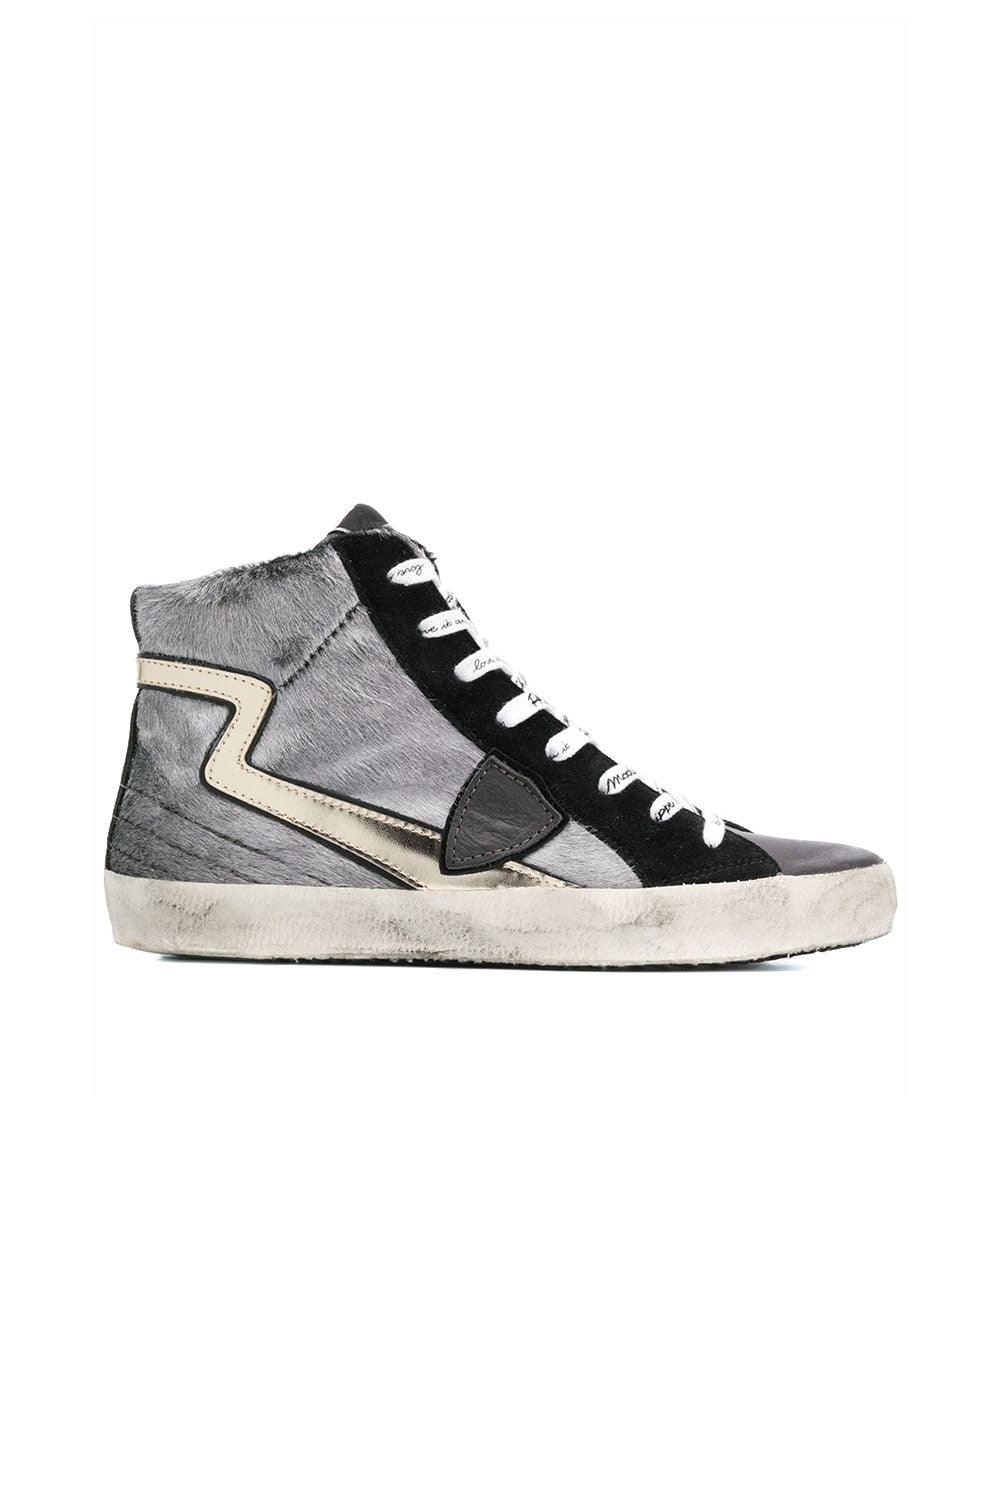 Paris Eclair High Top